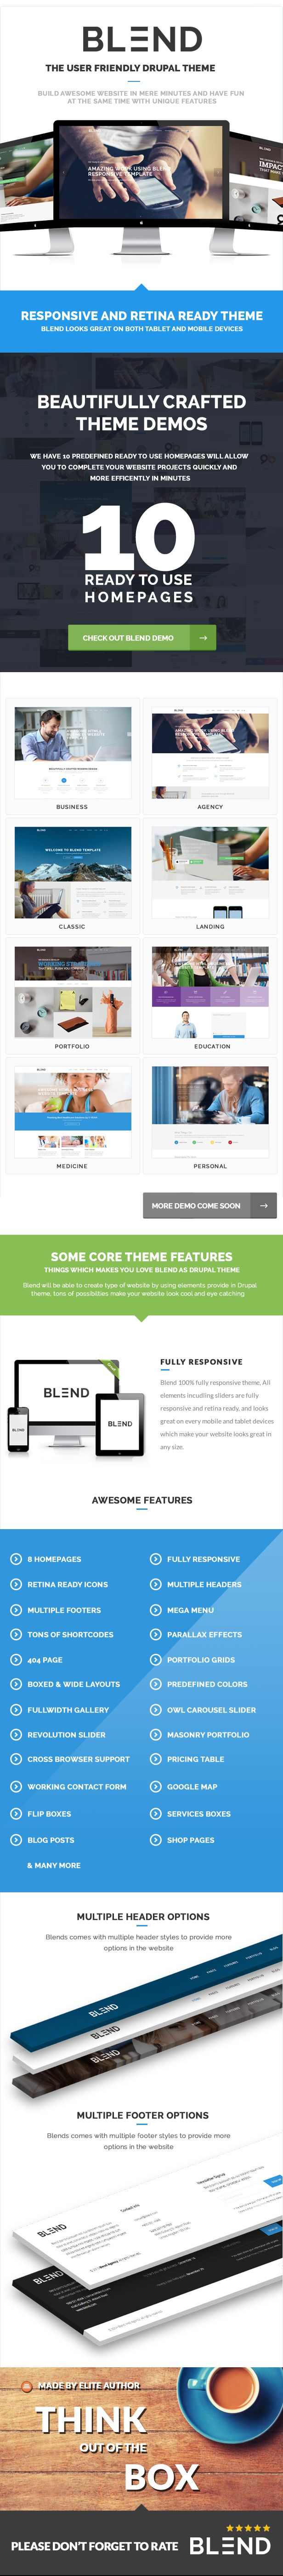 30 best Top Drupal Themes images on Pinterest